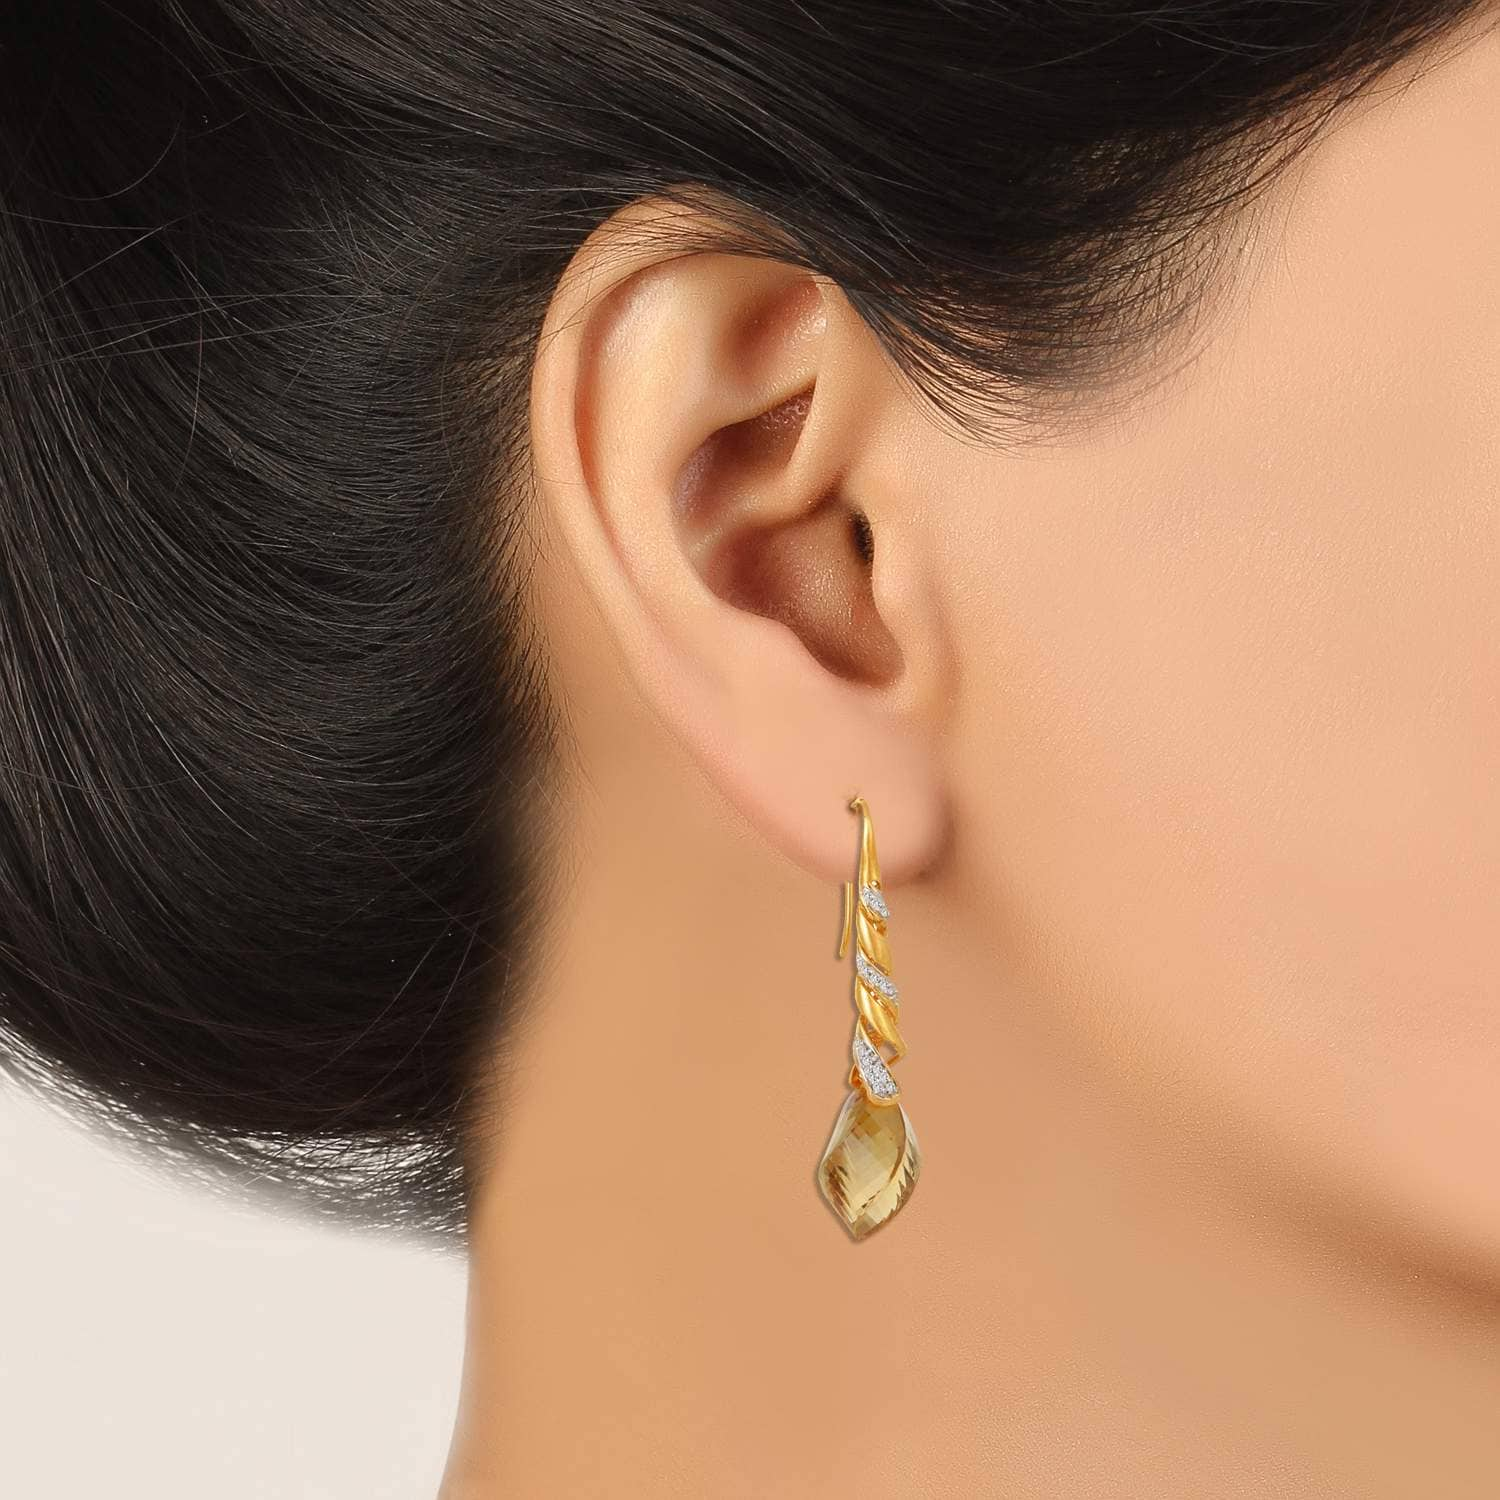 Buy Stylish Tanishq Hoop Earrings For Women At Best Price Online India :  Titan